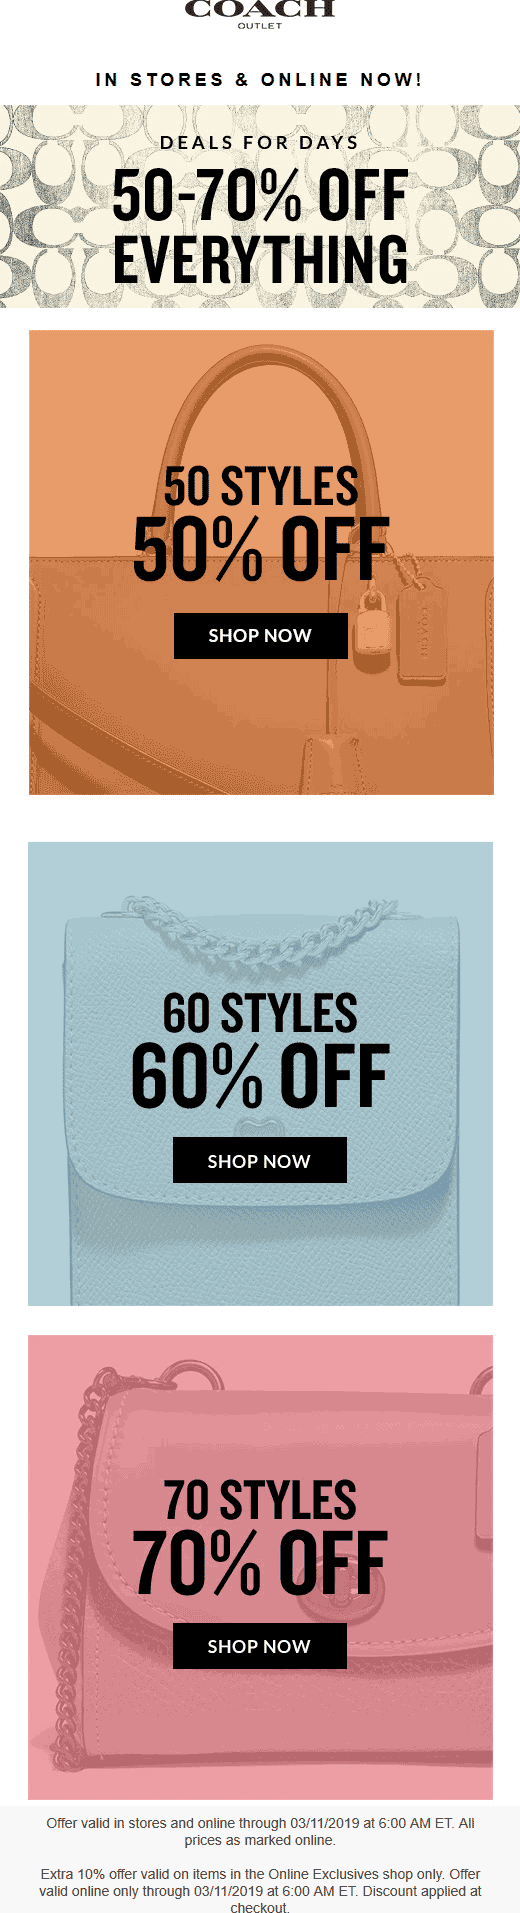 Coach Outlet Coupon June 2019 50-70% off everything at Coach Outlet, ditto online